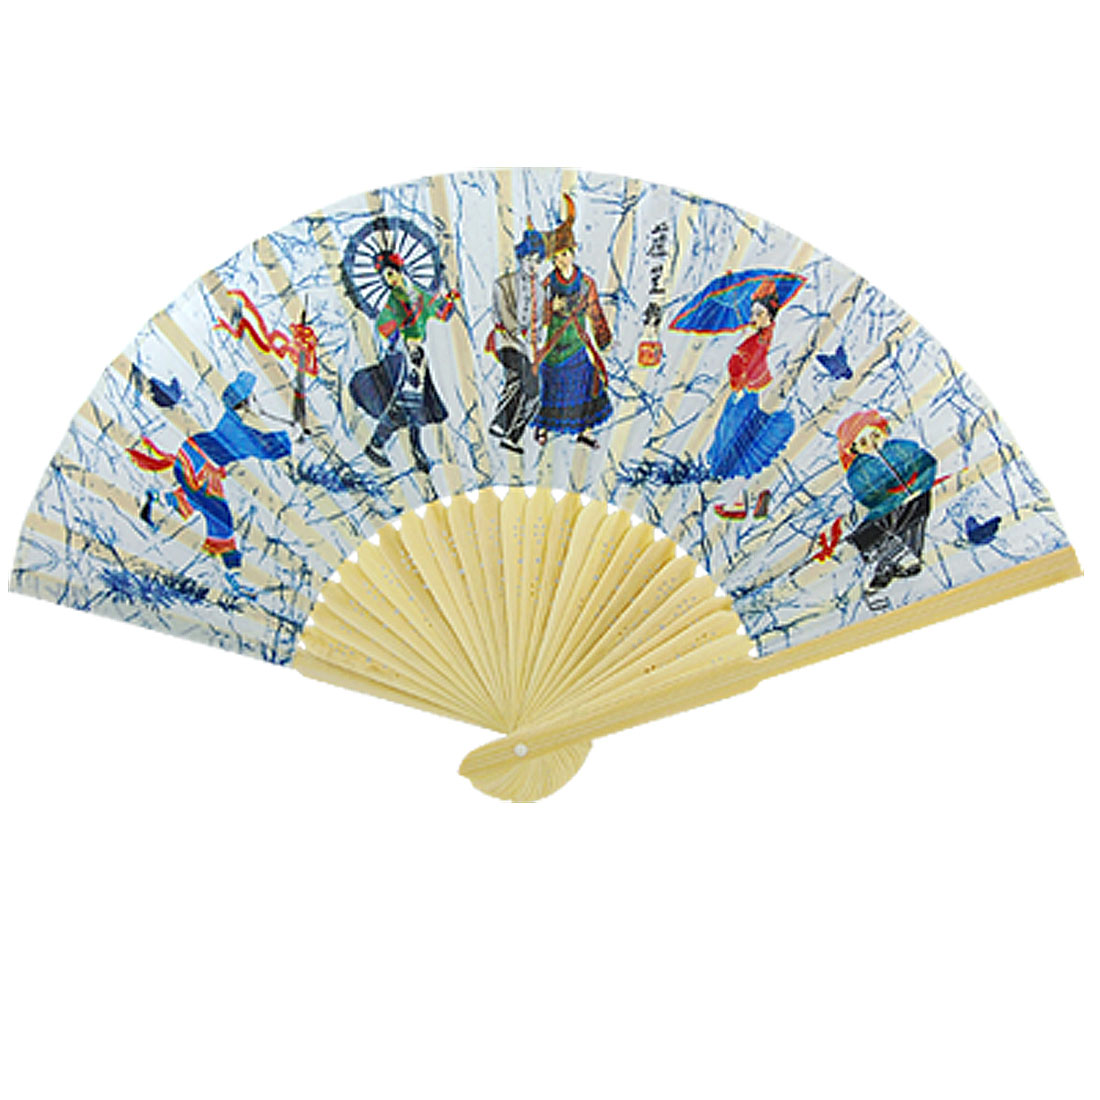 Foldable Colorful Chinese Minority Dancing Print Fabric Hand Fan